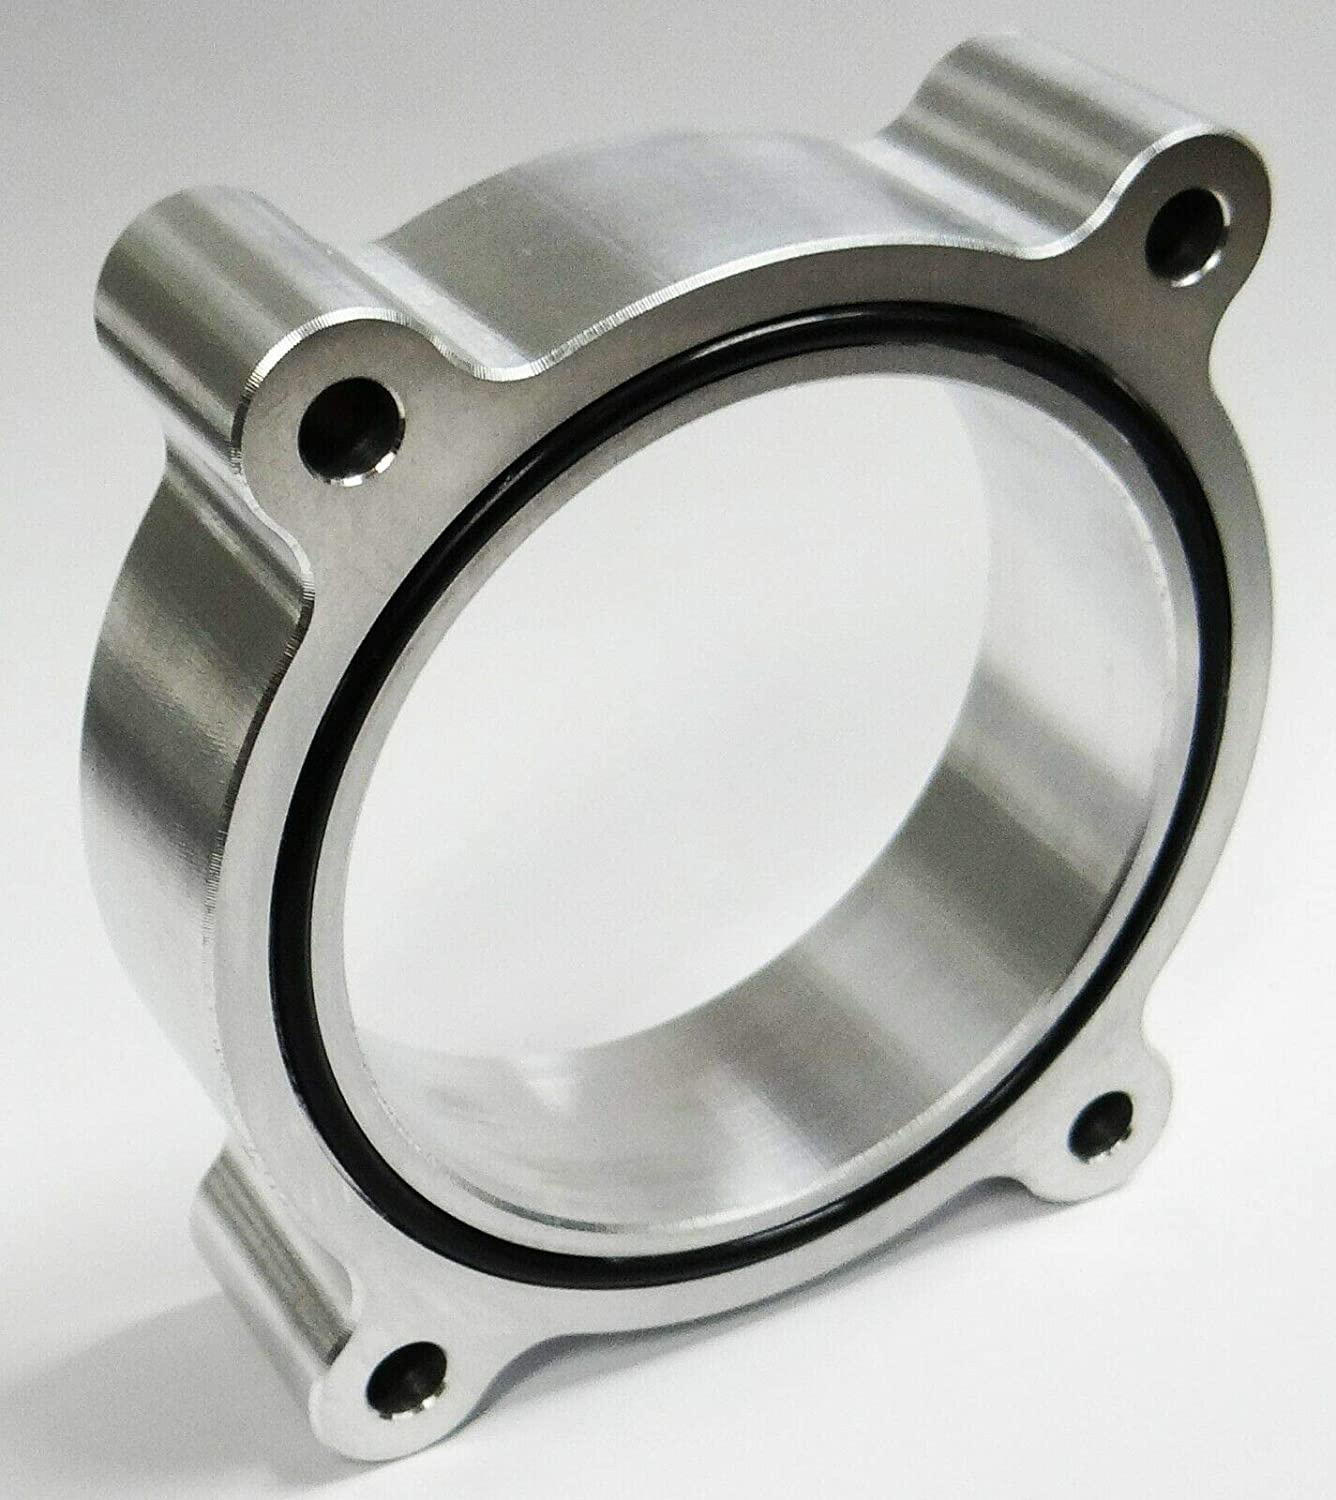 Throttle Body Spacer Memphis Mall for Ford 2011-2019 3.5 Washington Mall Lincoln Tur Models